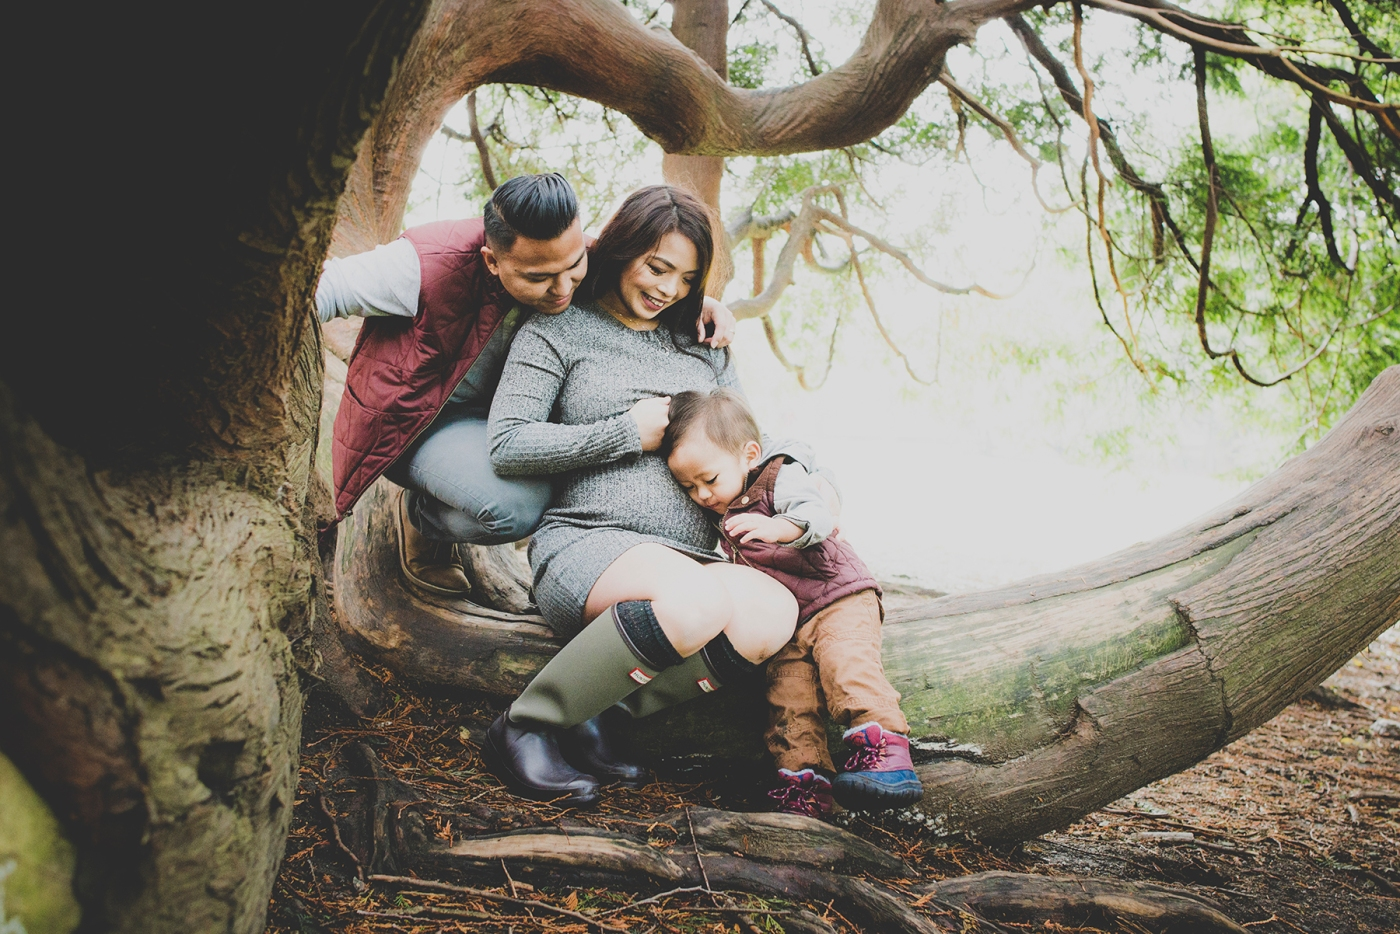 paula_p_maternity_the_royal_squirrel_seattle_family_photographer_2016_dsc_7970